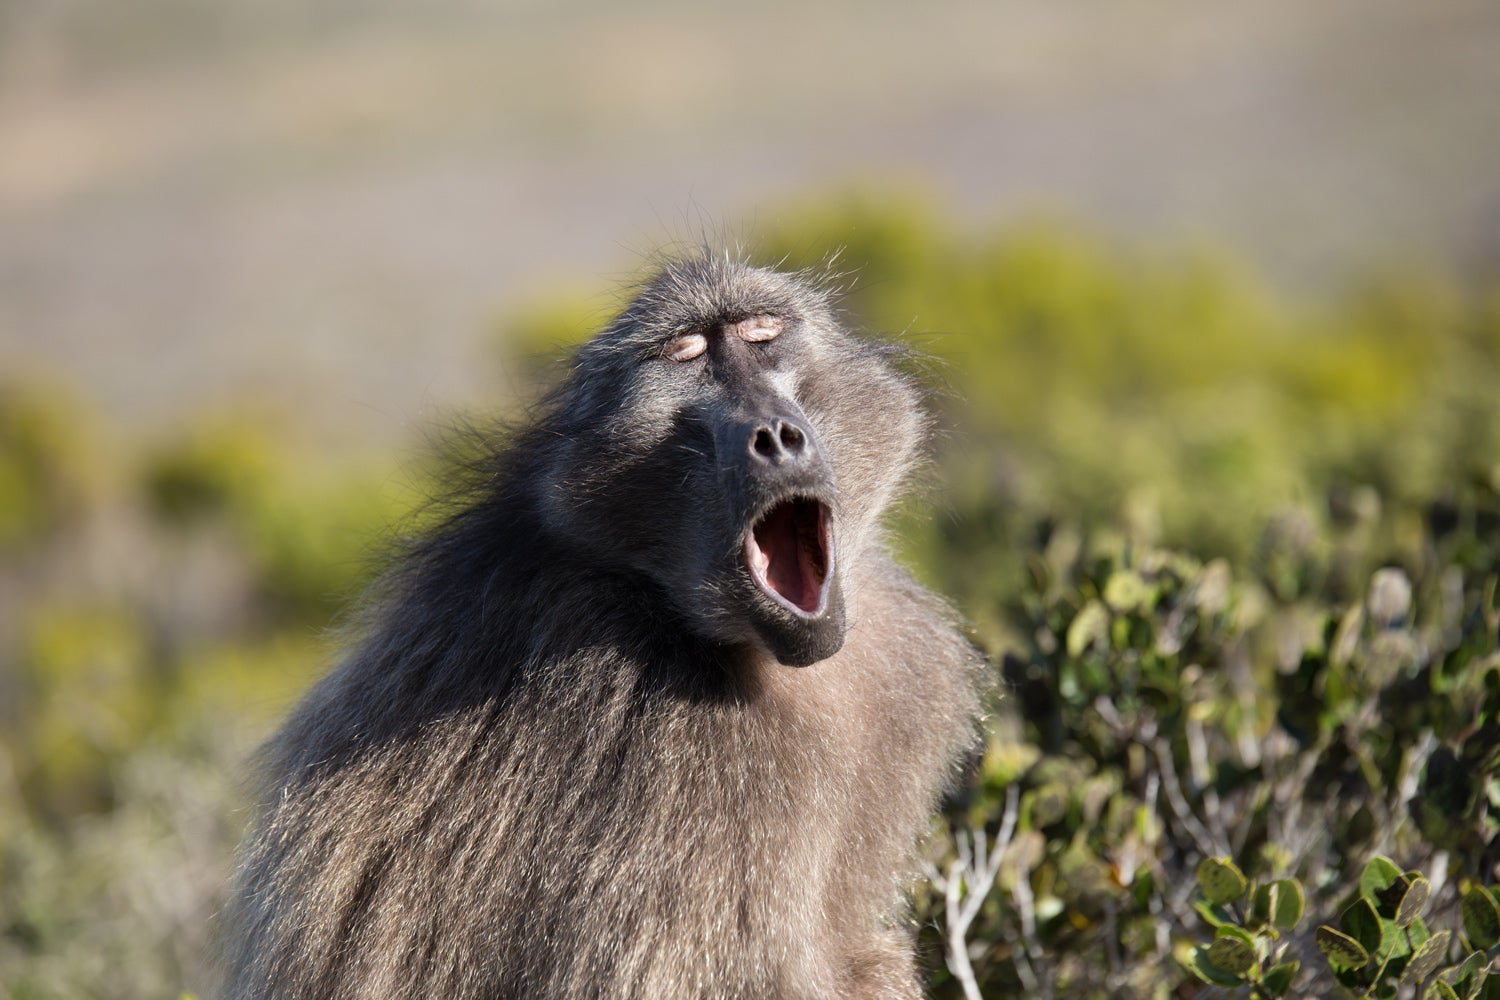 Baboon making sounds